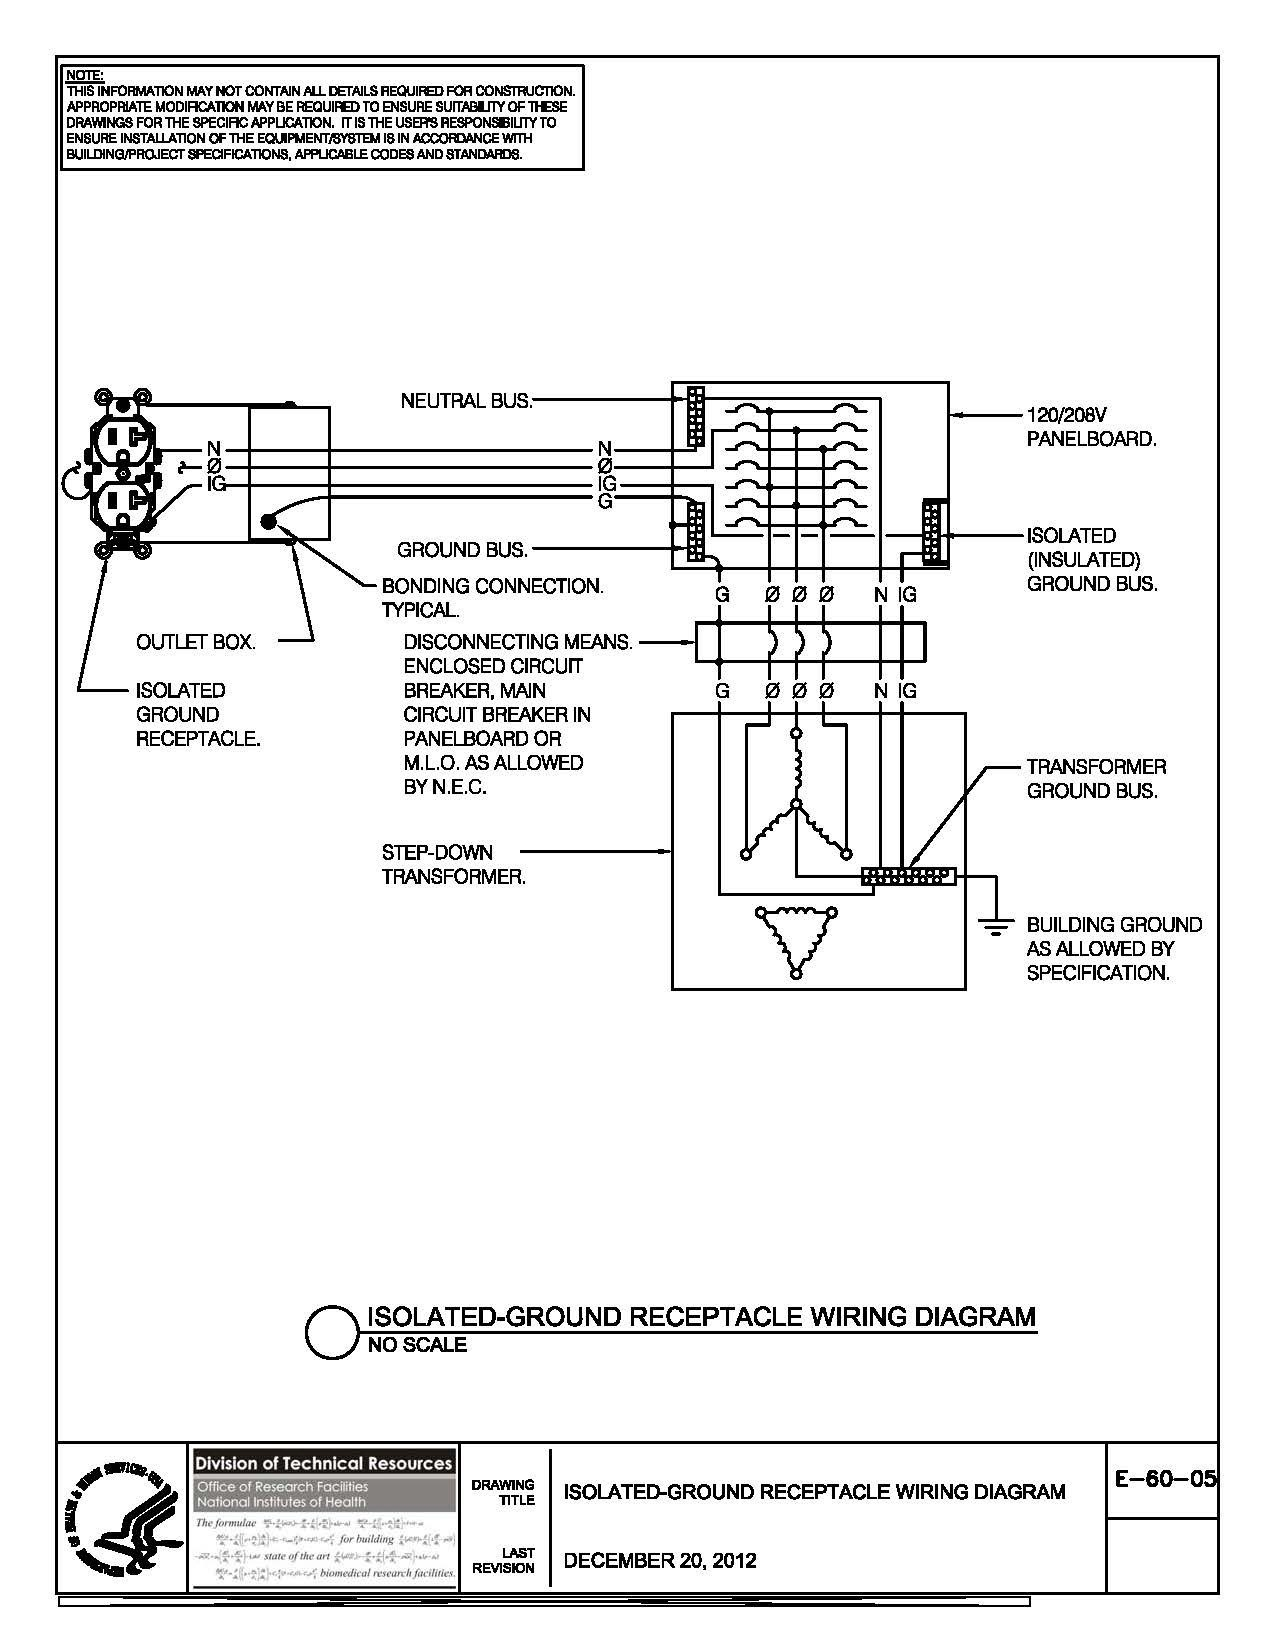 invisible fence wiring diagram Download-Invisible Fence Wiring Diagram Recent Circuit Diagram Maker And Tester Fresh New Invisible Fence Wiring 11-p